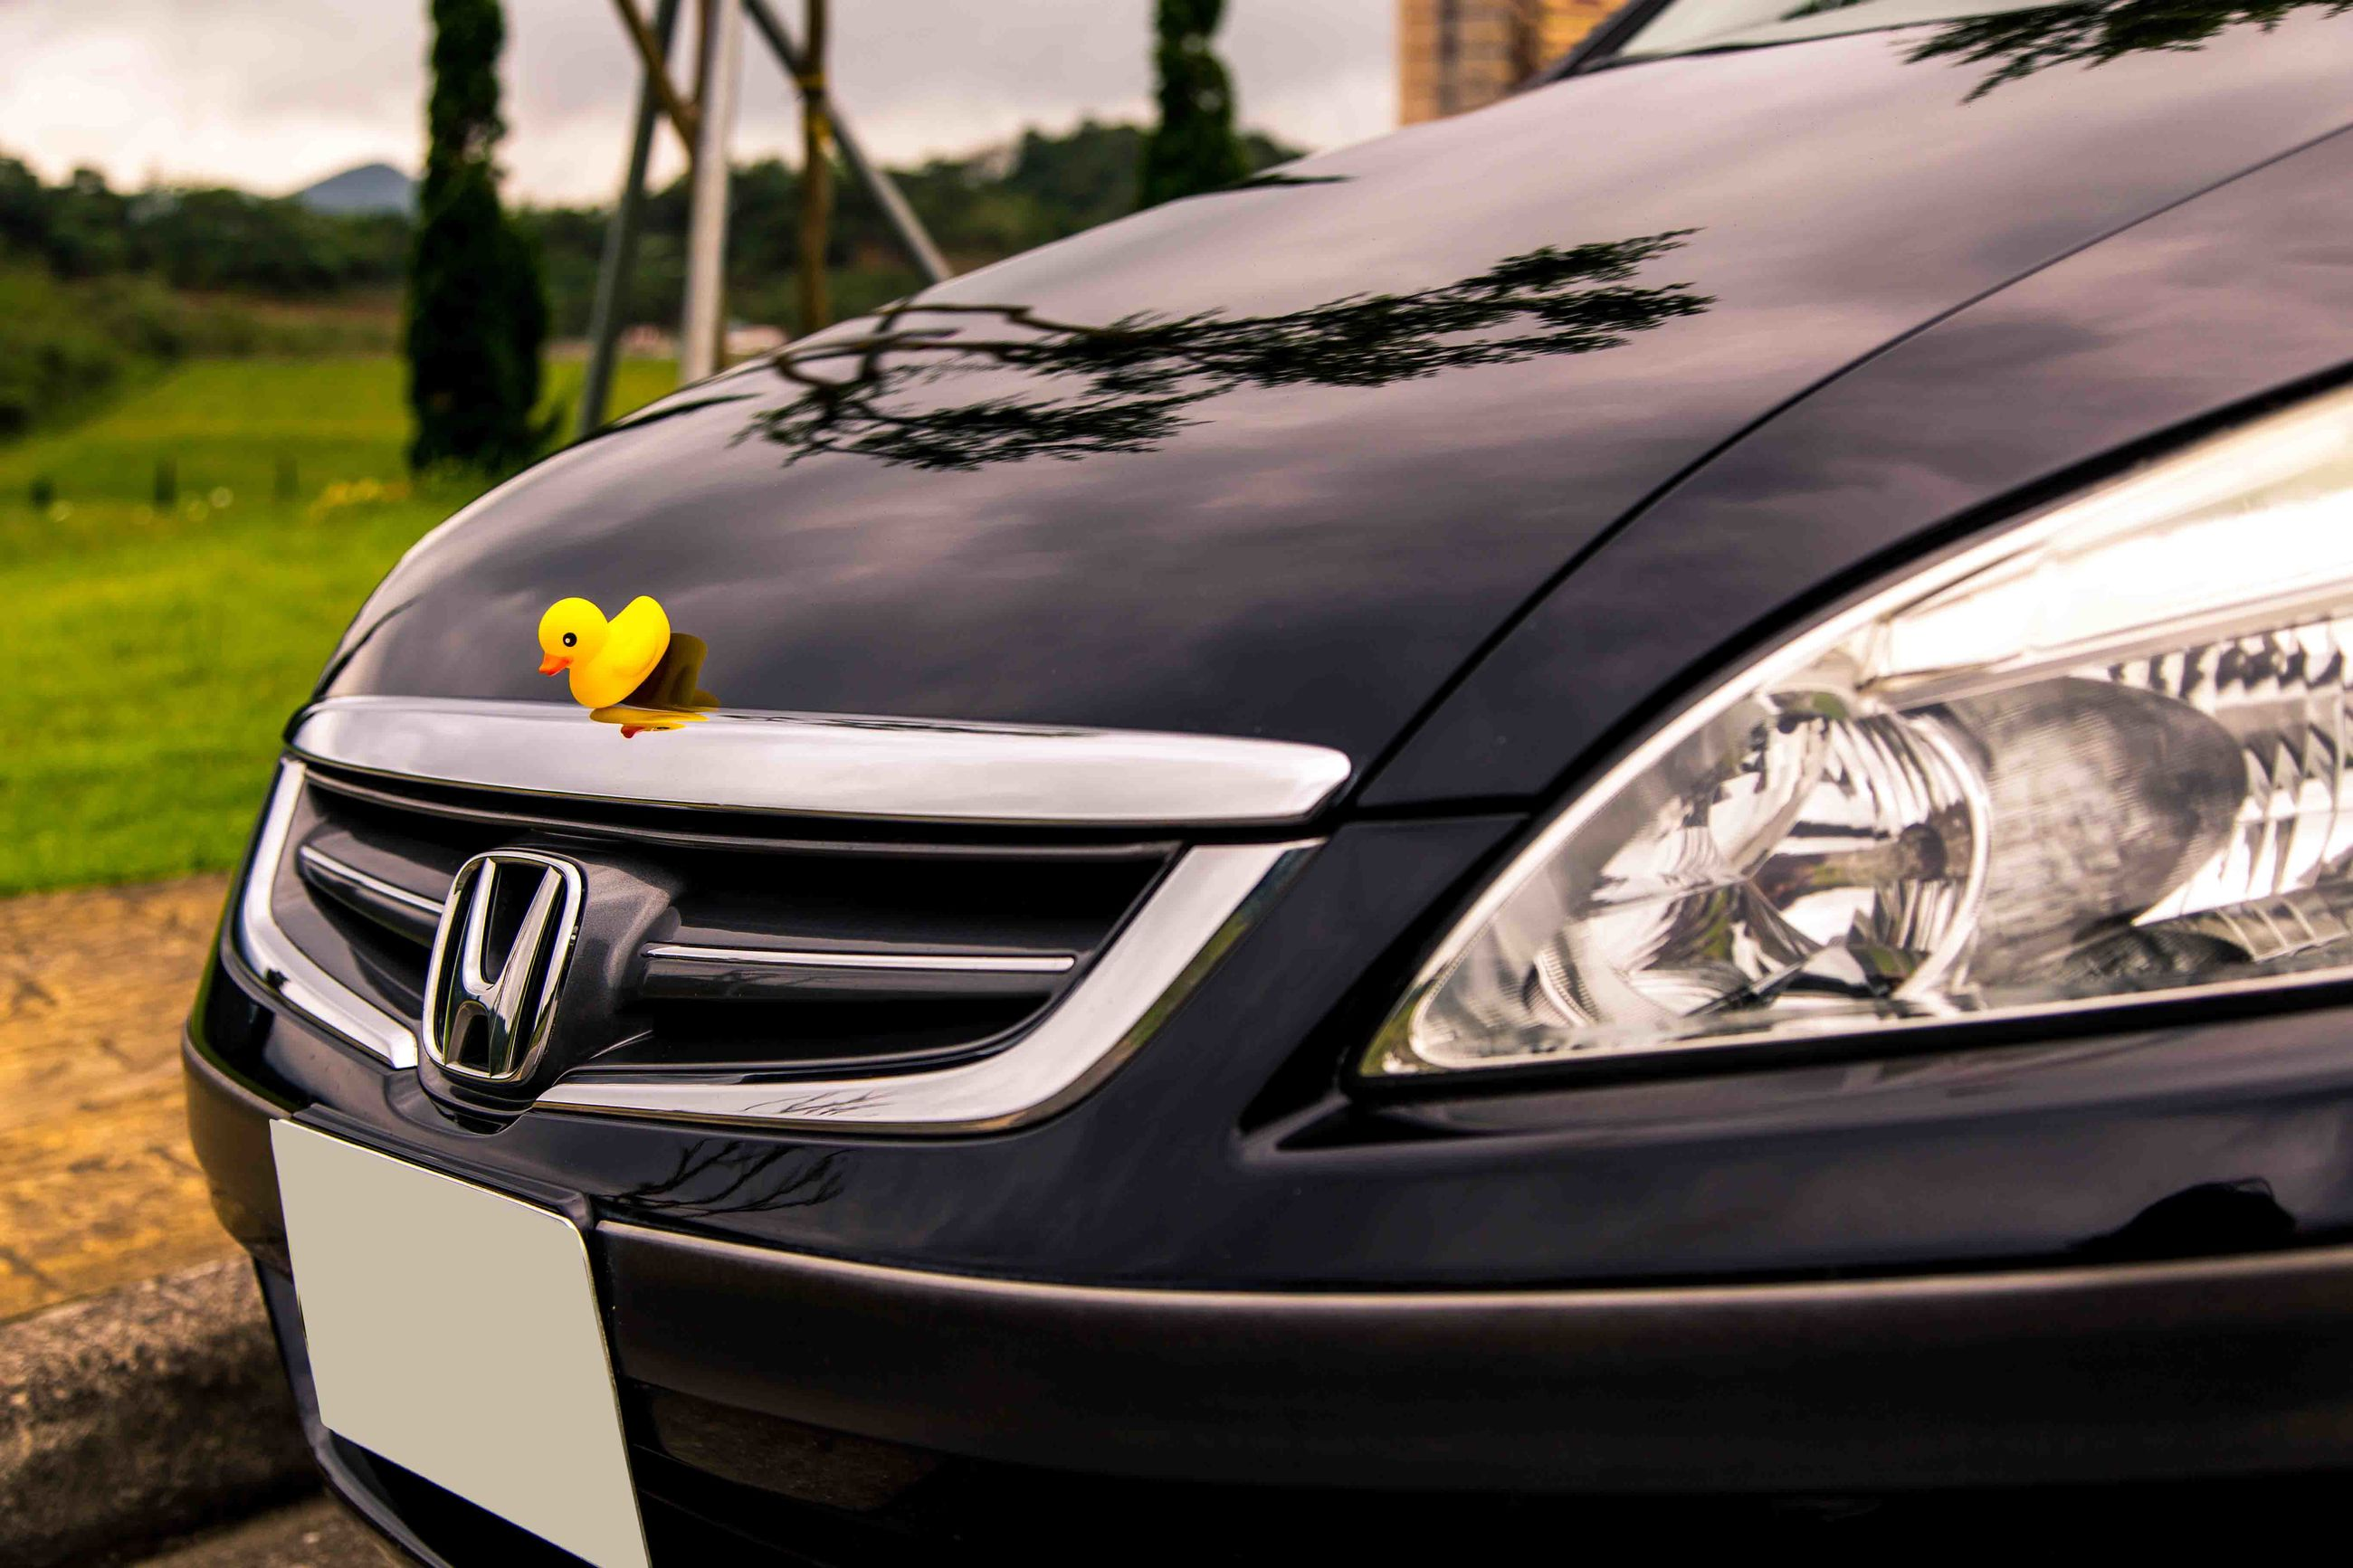 transportation, focus on foreground, mode of transport, close-up, land vehicle, car, tree, day, flower, nature, part of, outdoors, field, no people, yellow, cropped, sunlight, fragility, plant, park - man made space